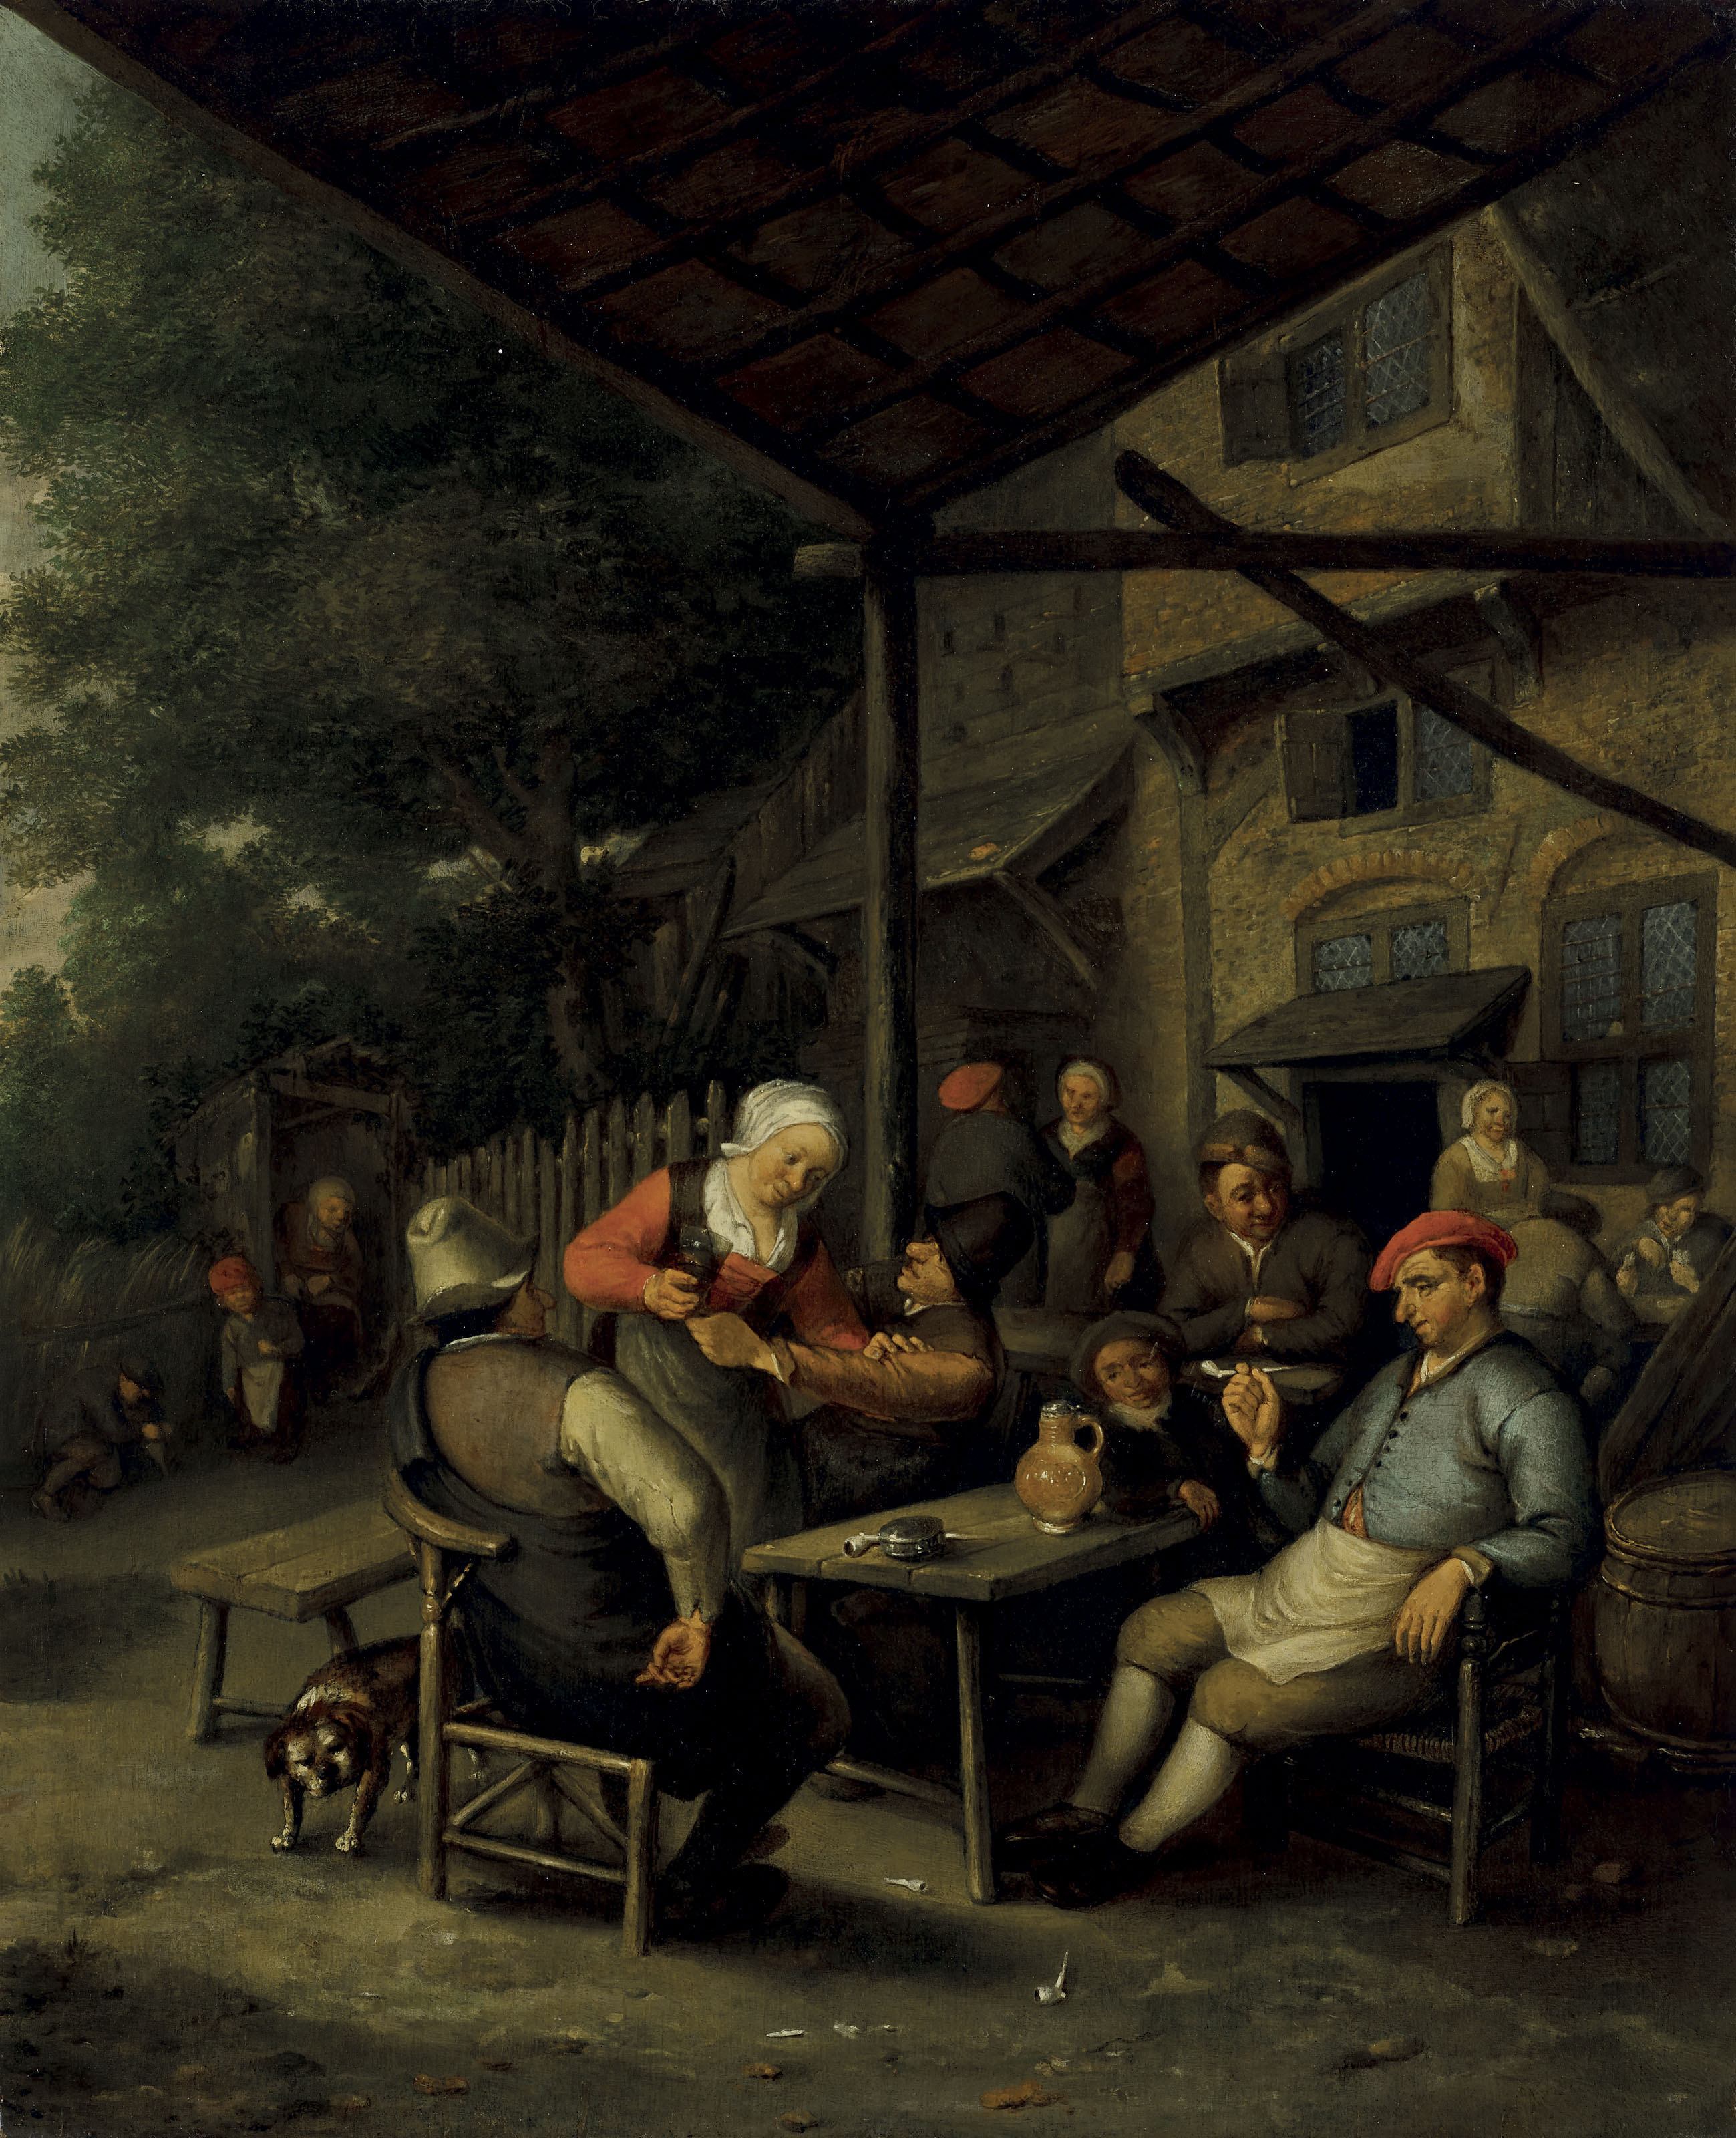 A group of figures drinking and smoking before an inn